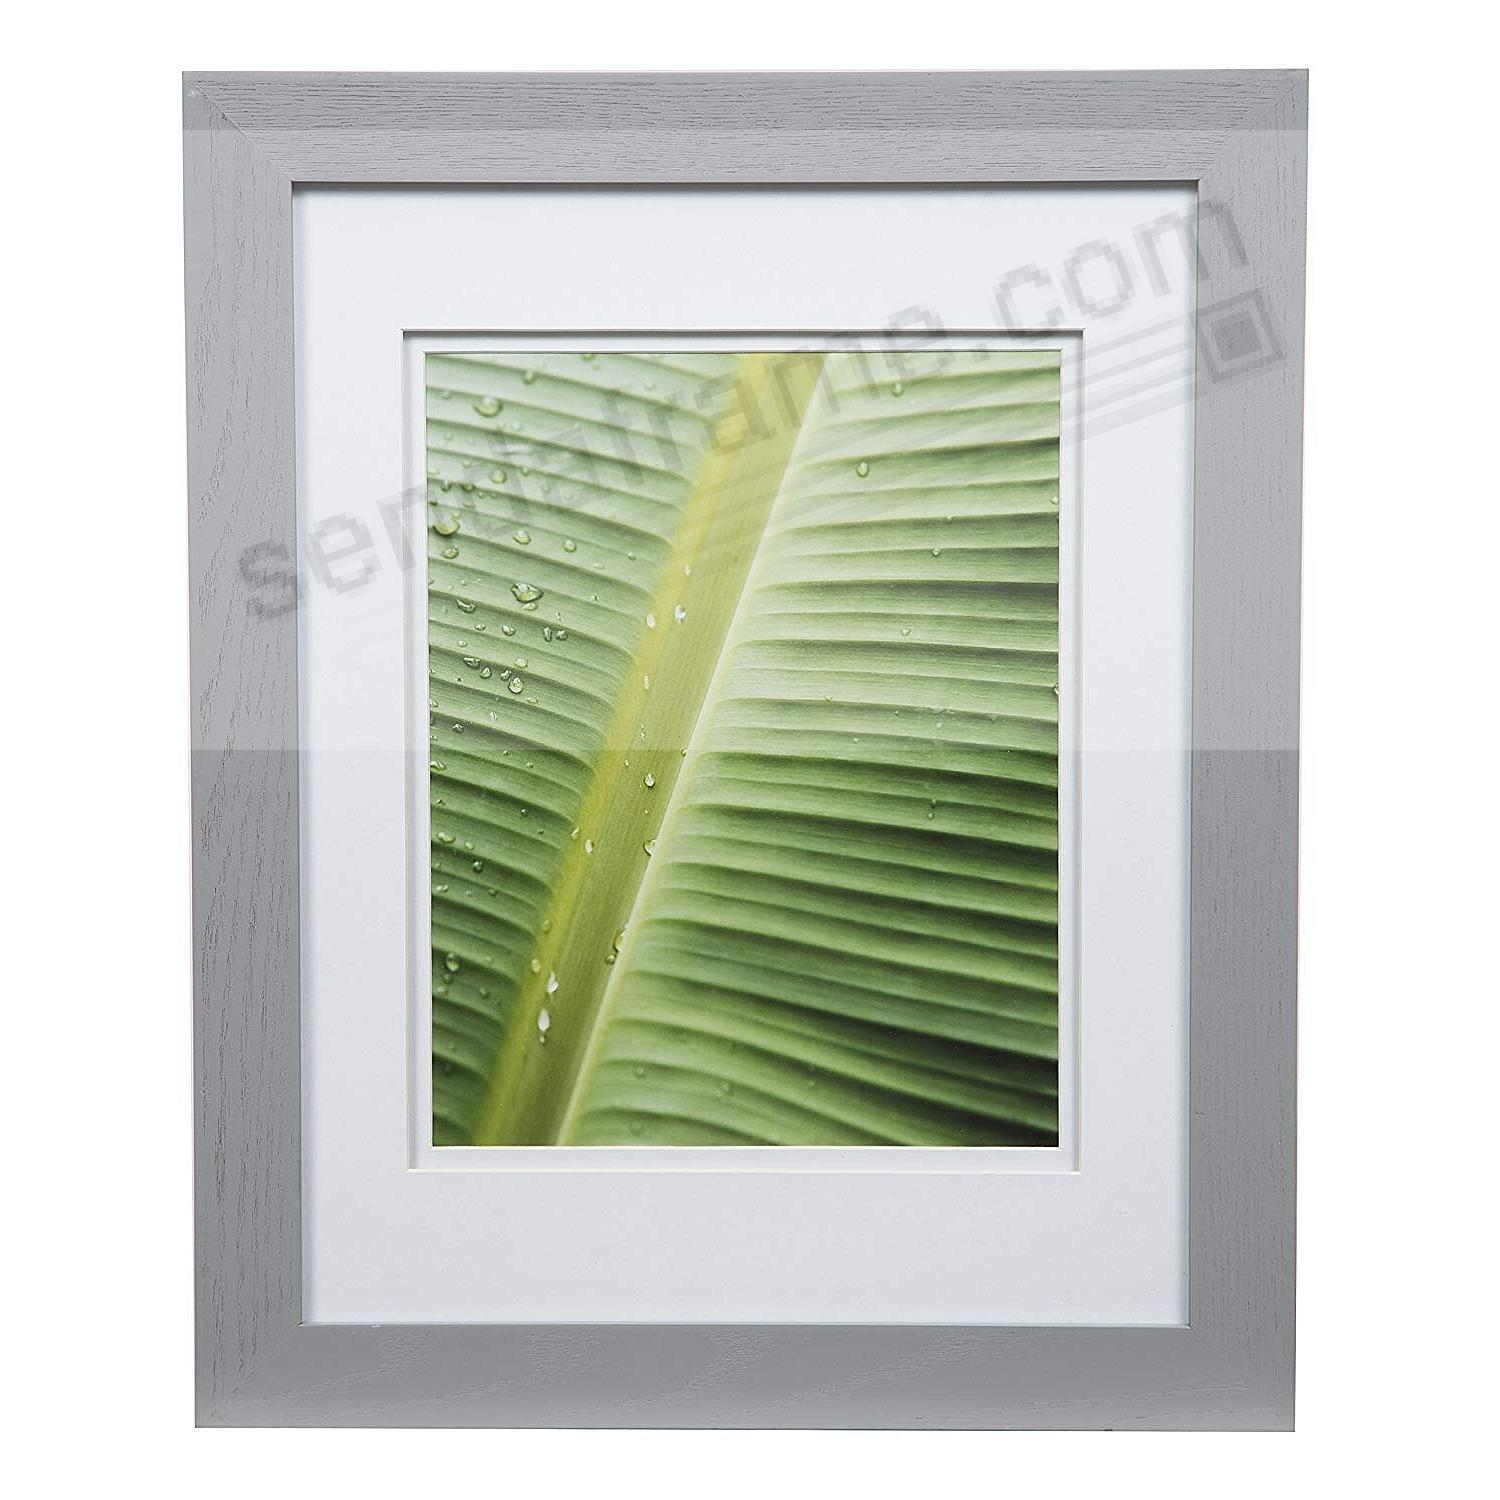 BRUSHED SILVER 11x14/8x10 double matted frame by Gallery Solutions™